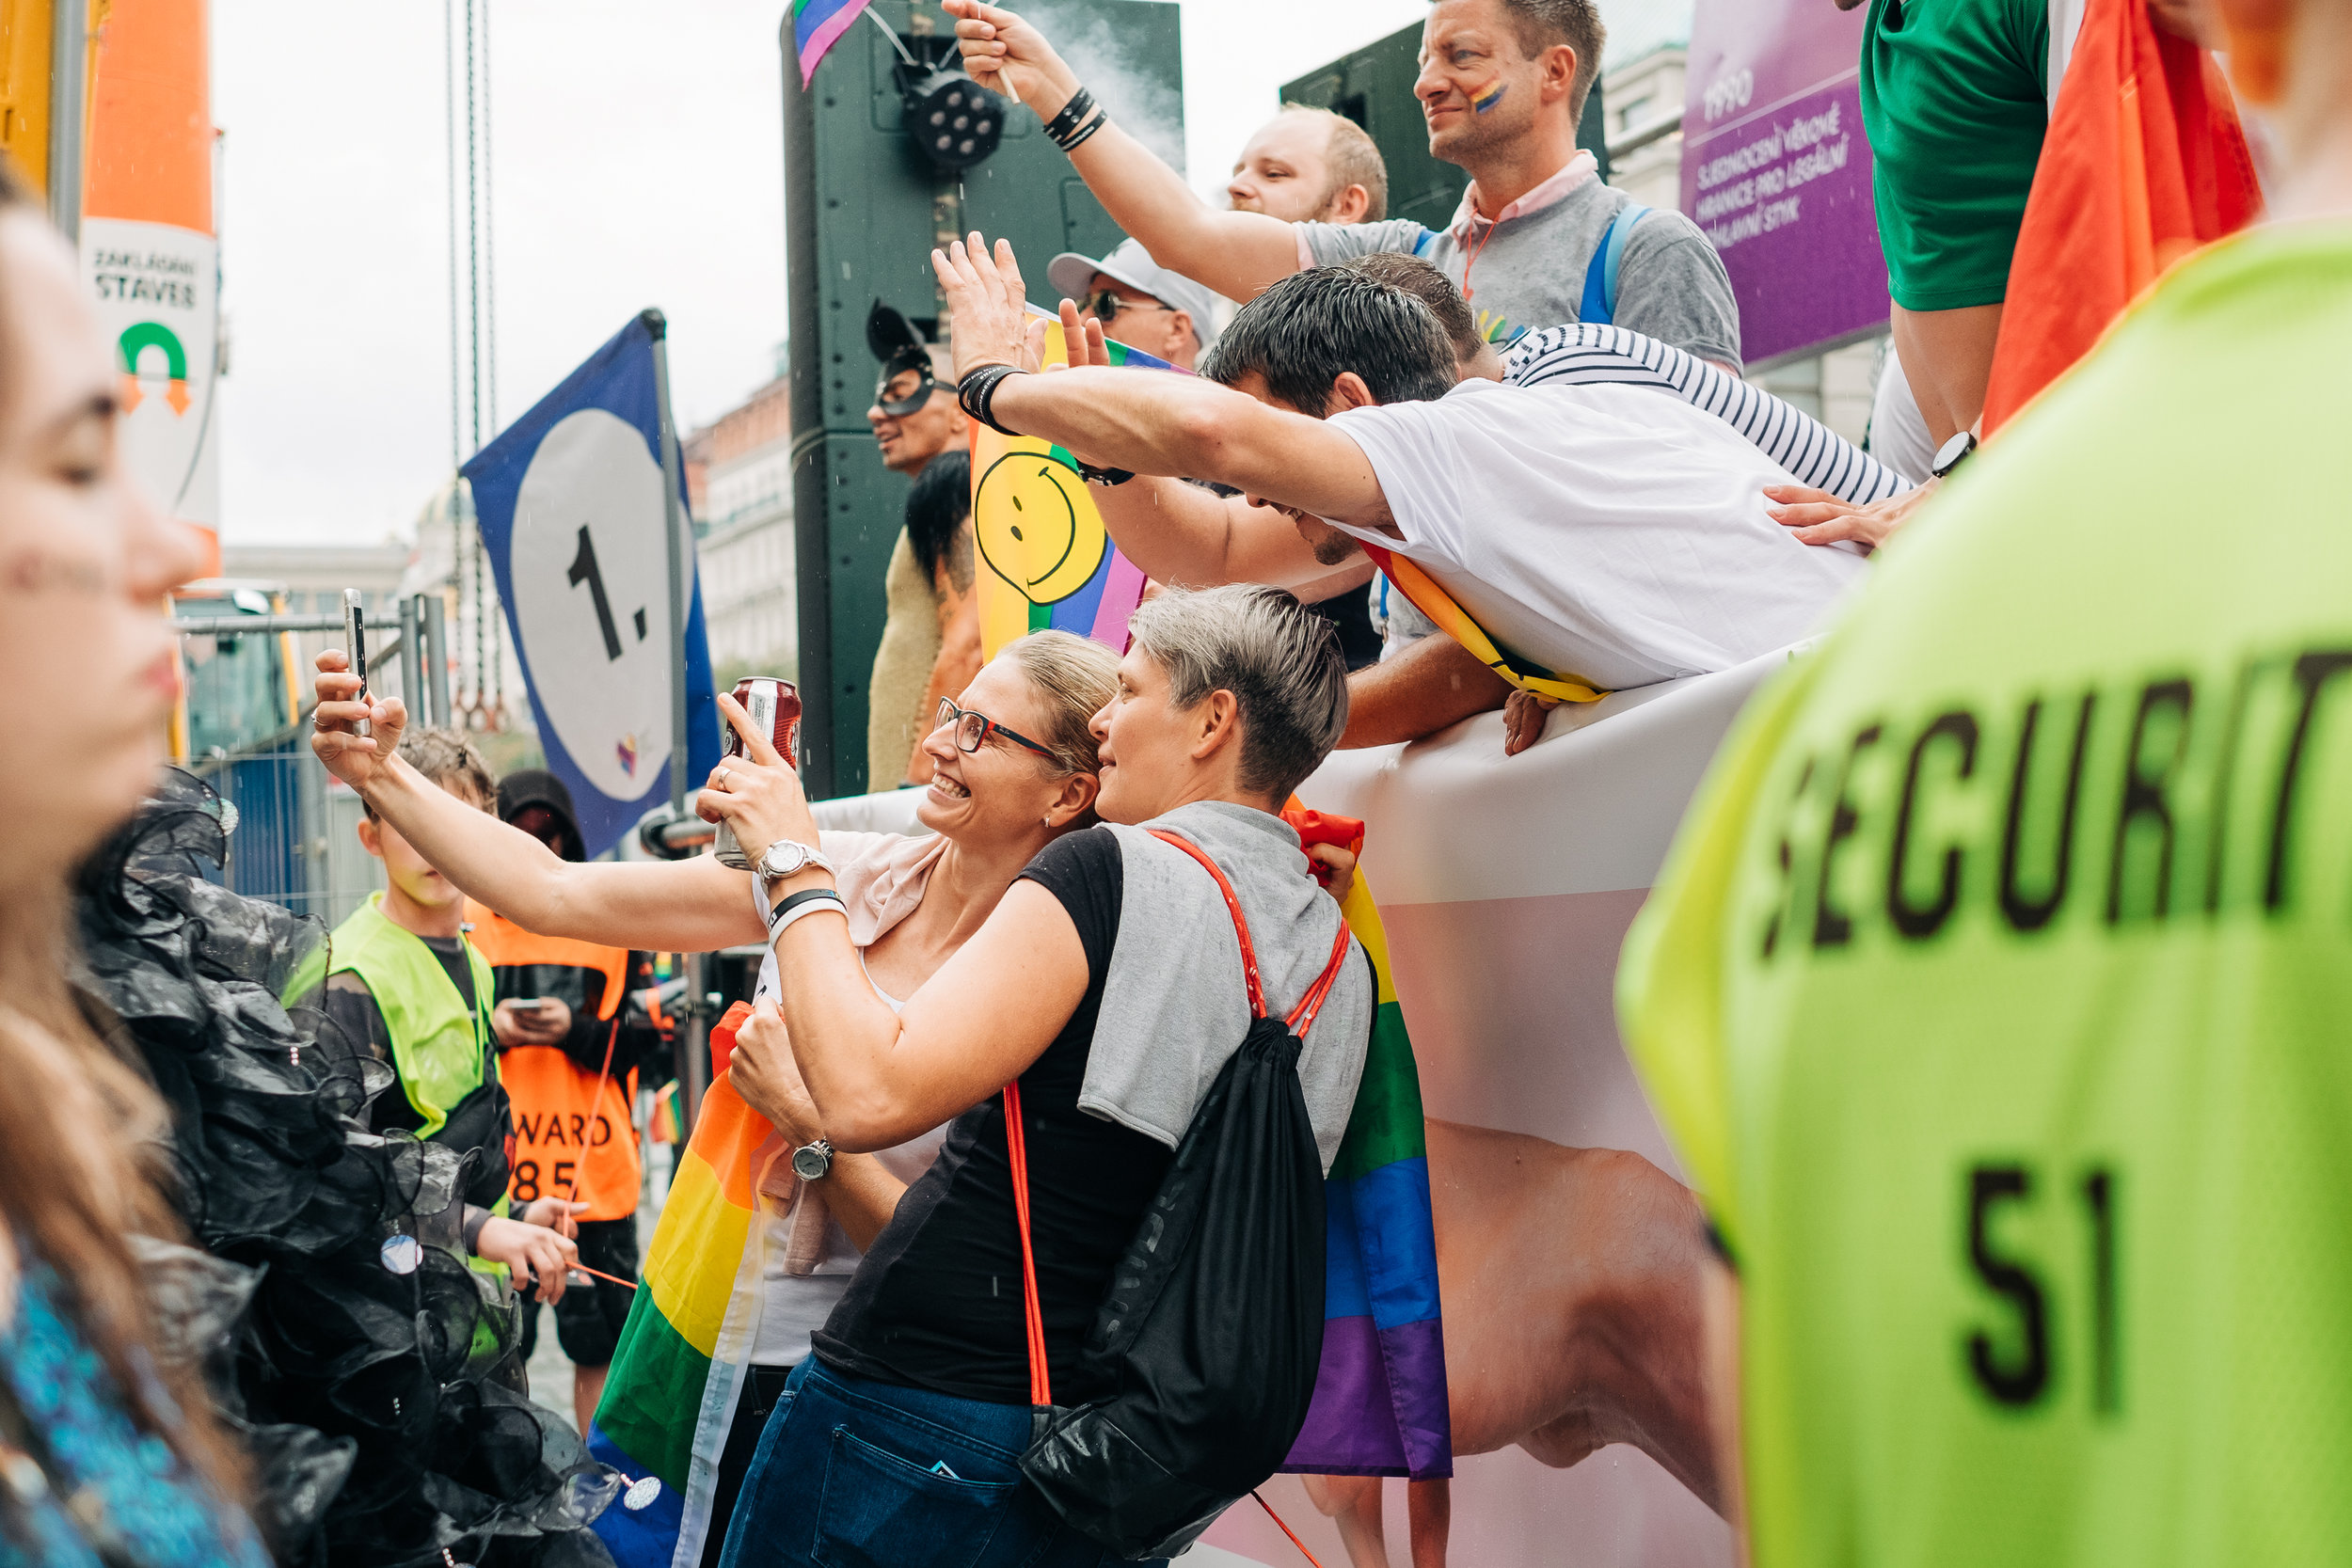 Prague Pride 2019 (10 of 47).jpg